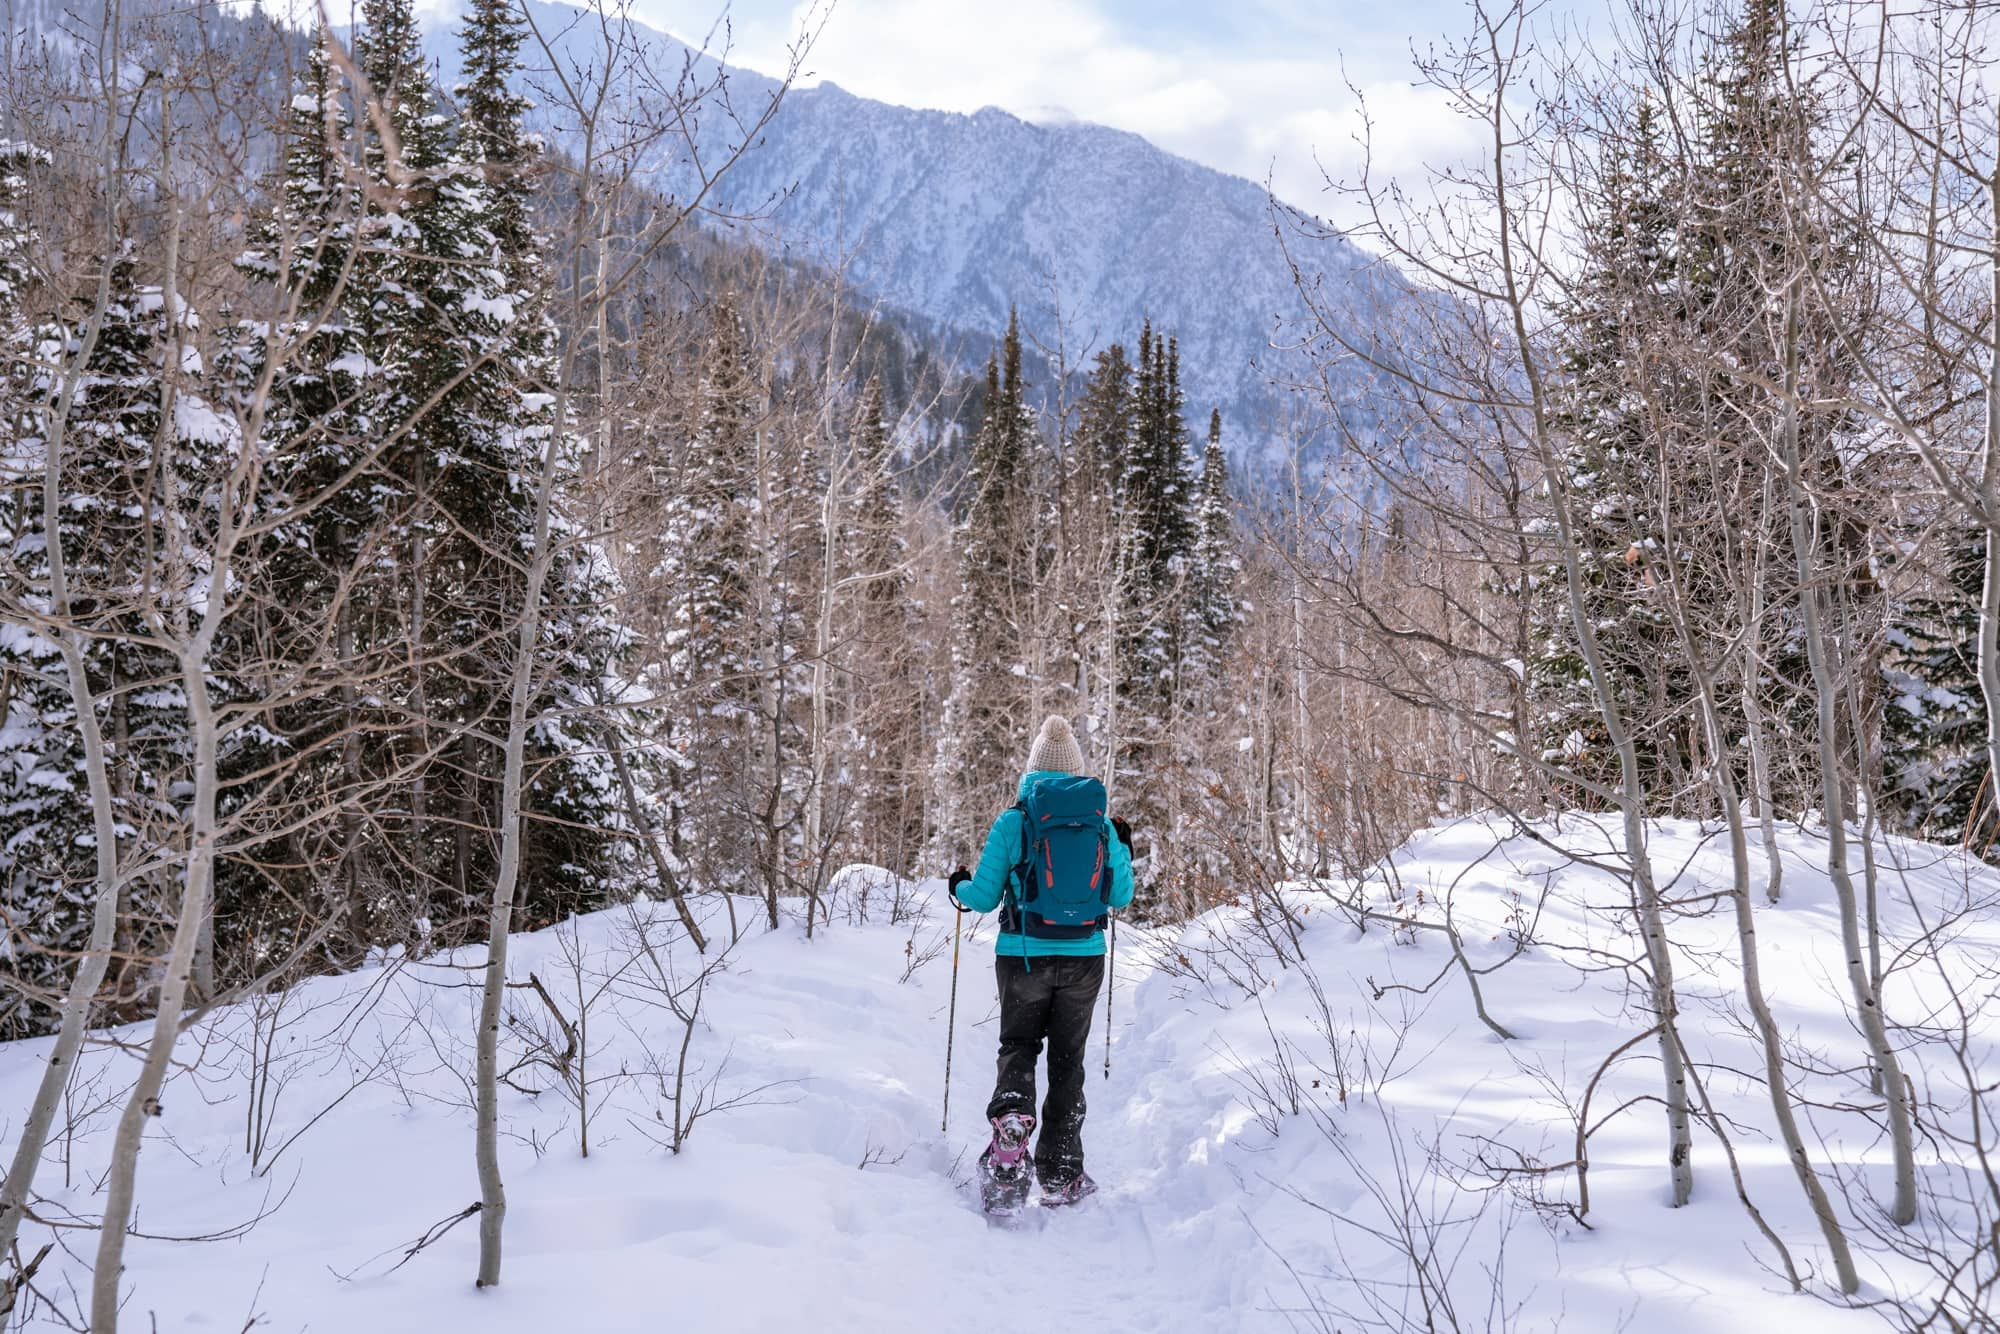 New to snowshoeing? Learn how to snowshoe, along with info on finding trails, snowshoeing gear, and important safety tips with our snowshoeing 101 guide.